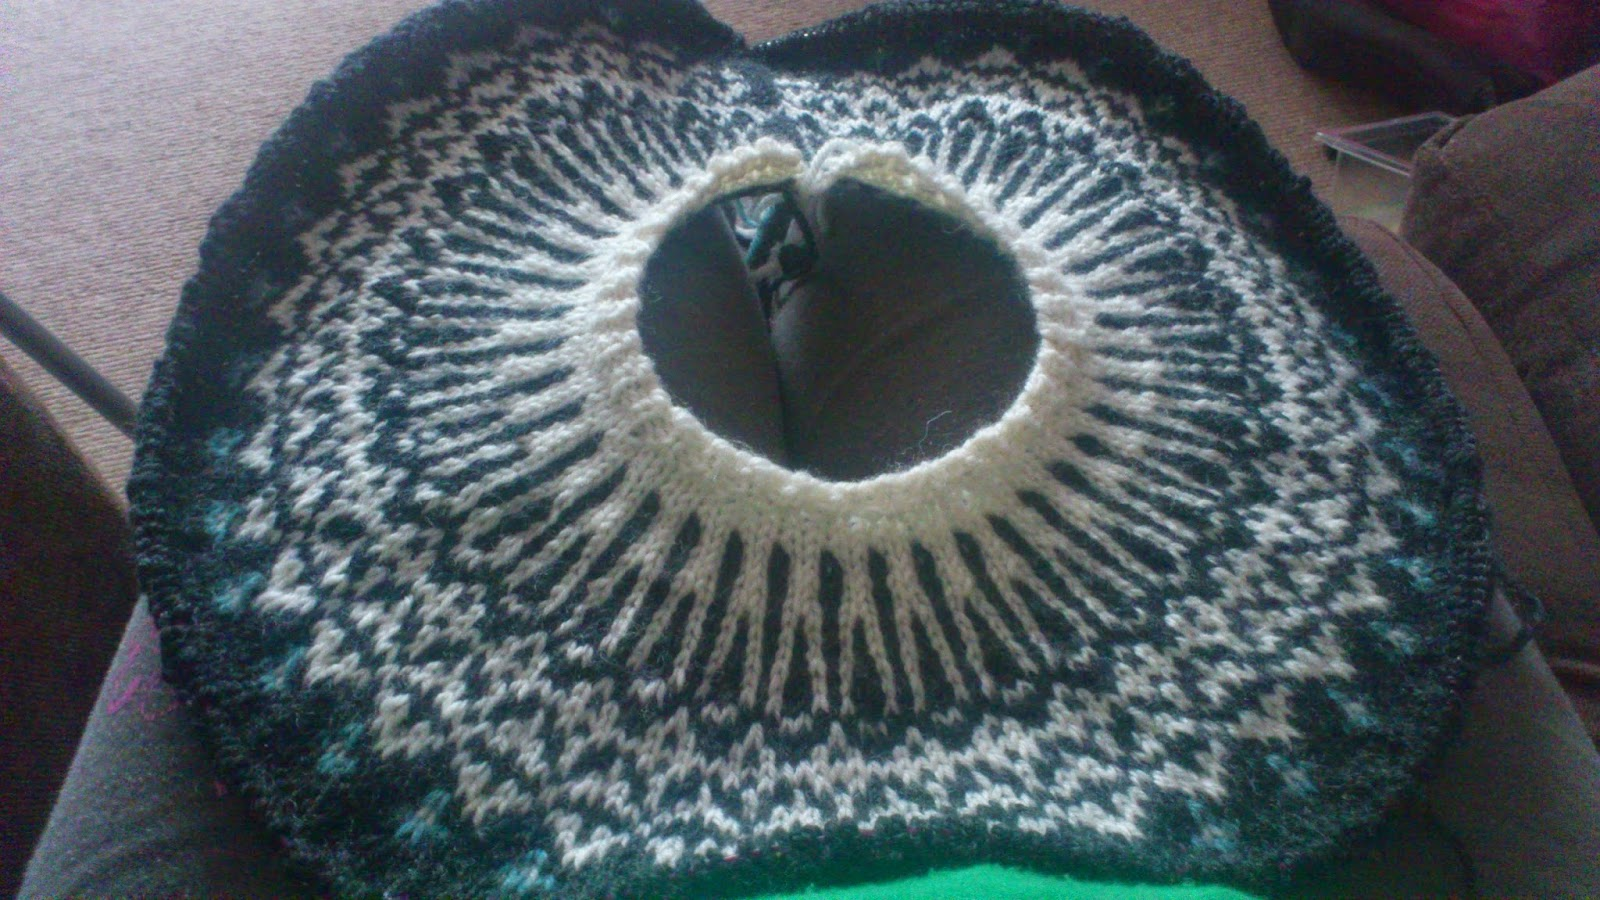 aaa1d5a290c3 My forays into Knitting  Top-Down Icelandic Sweater